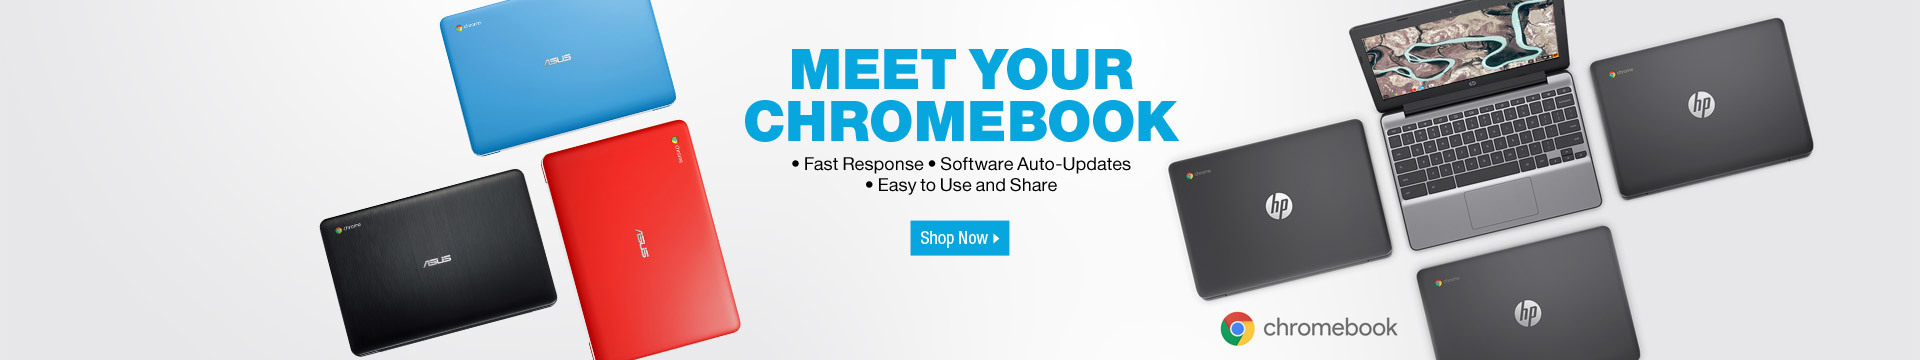 Meet your chromebook